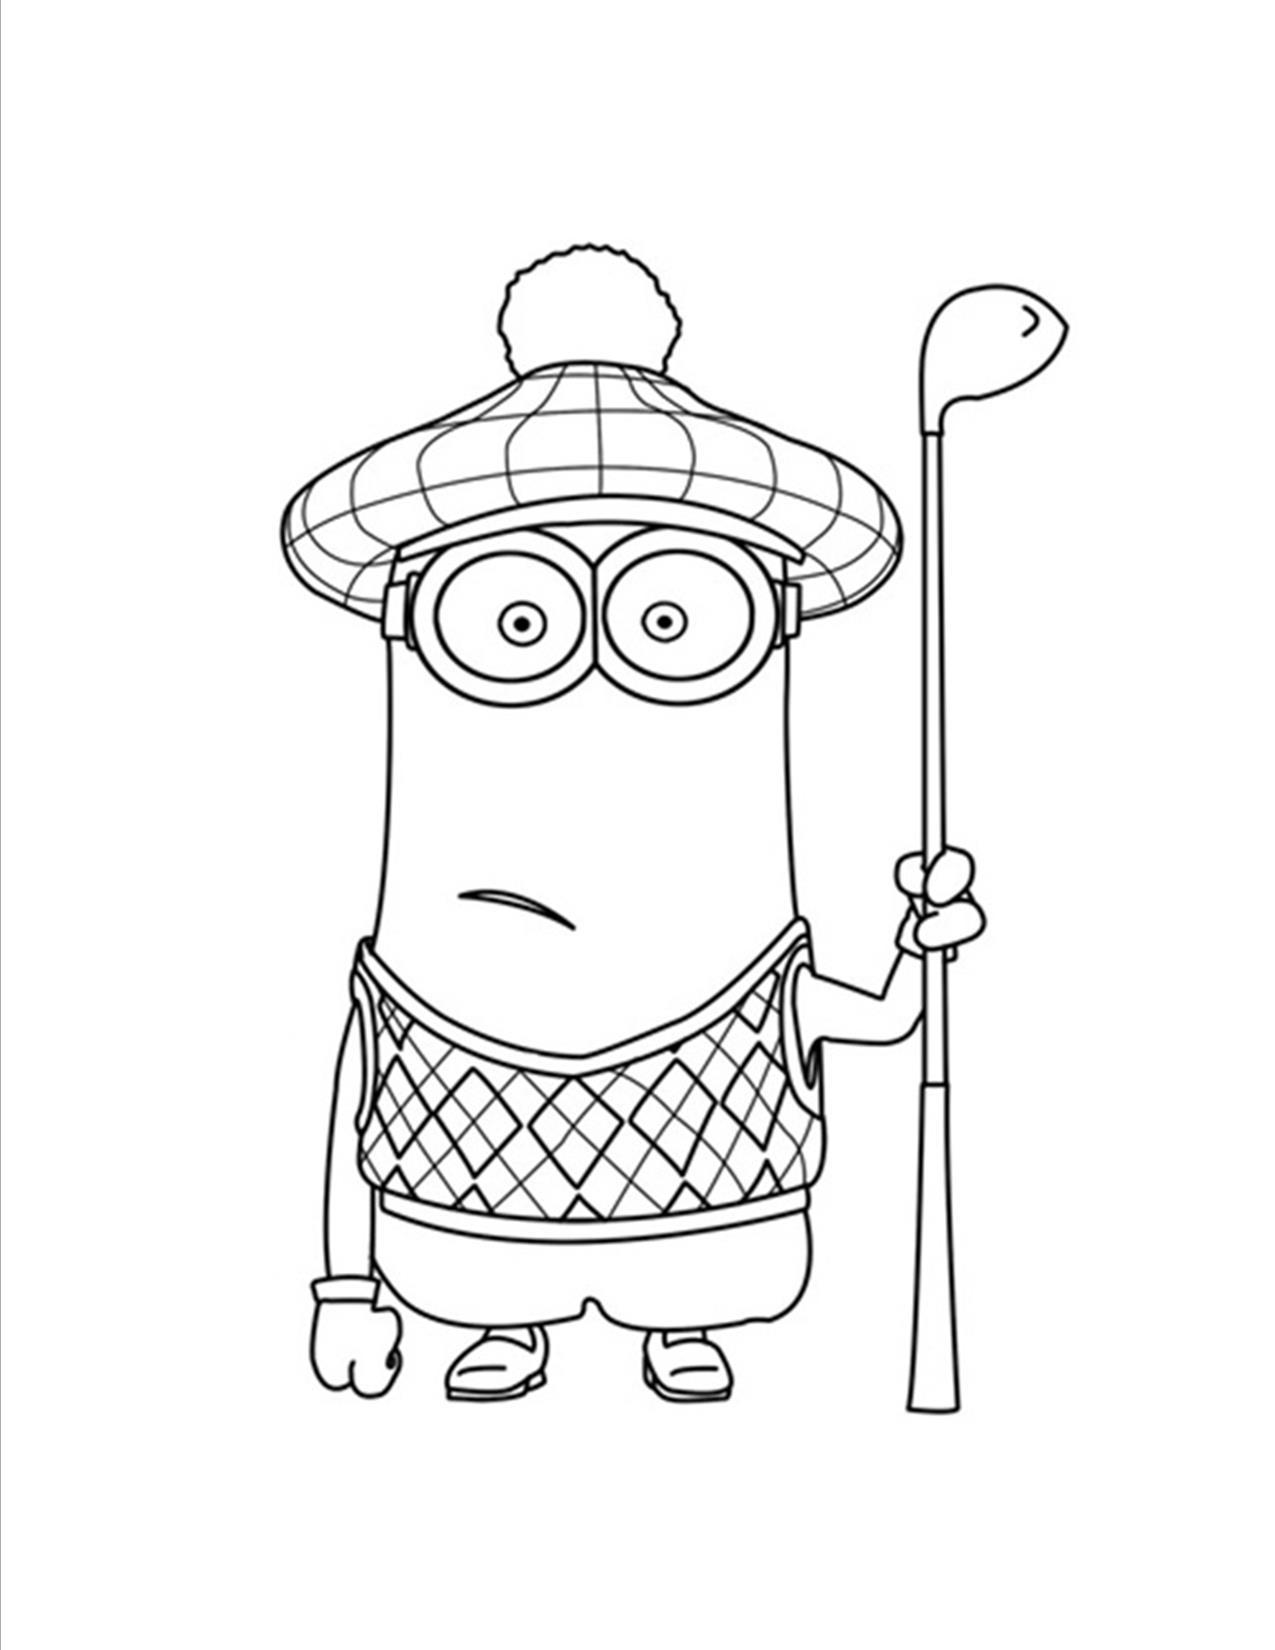 Kids Activity: Coloring Contest | Weymouth Country Club | 2017-07-01